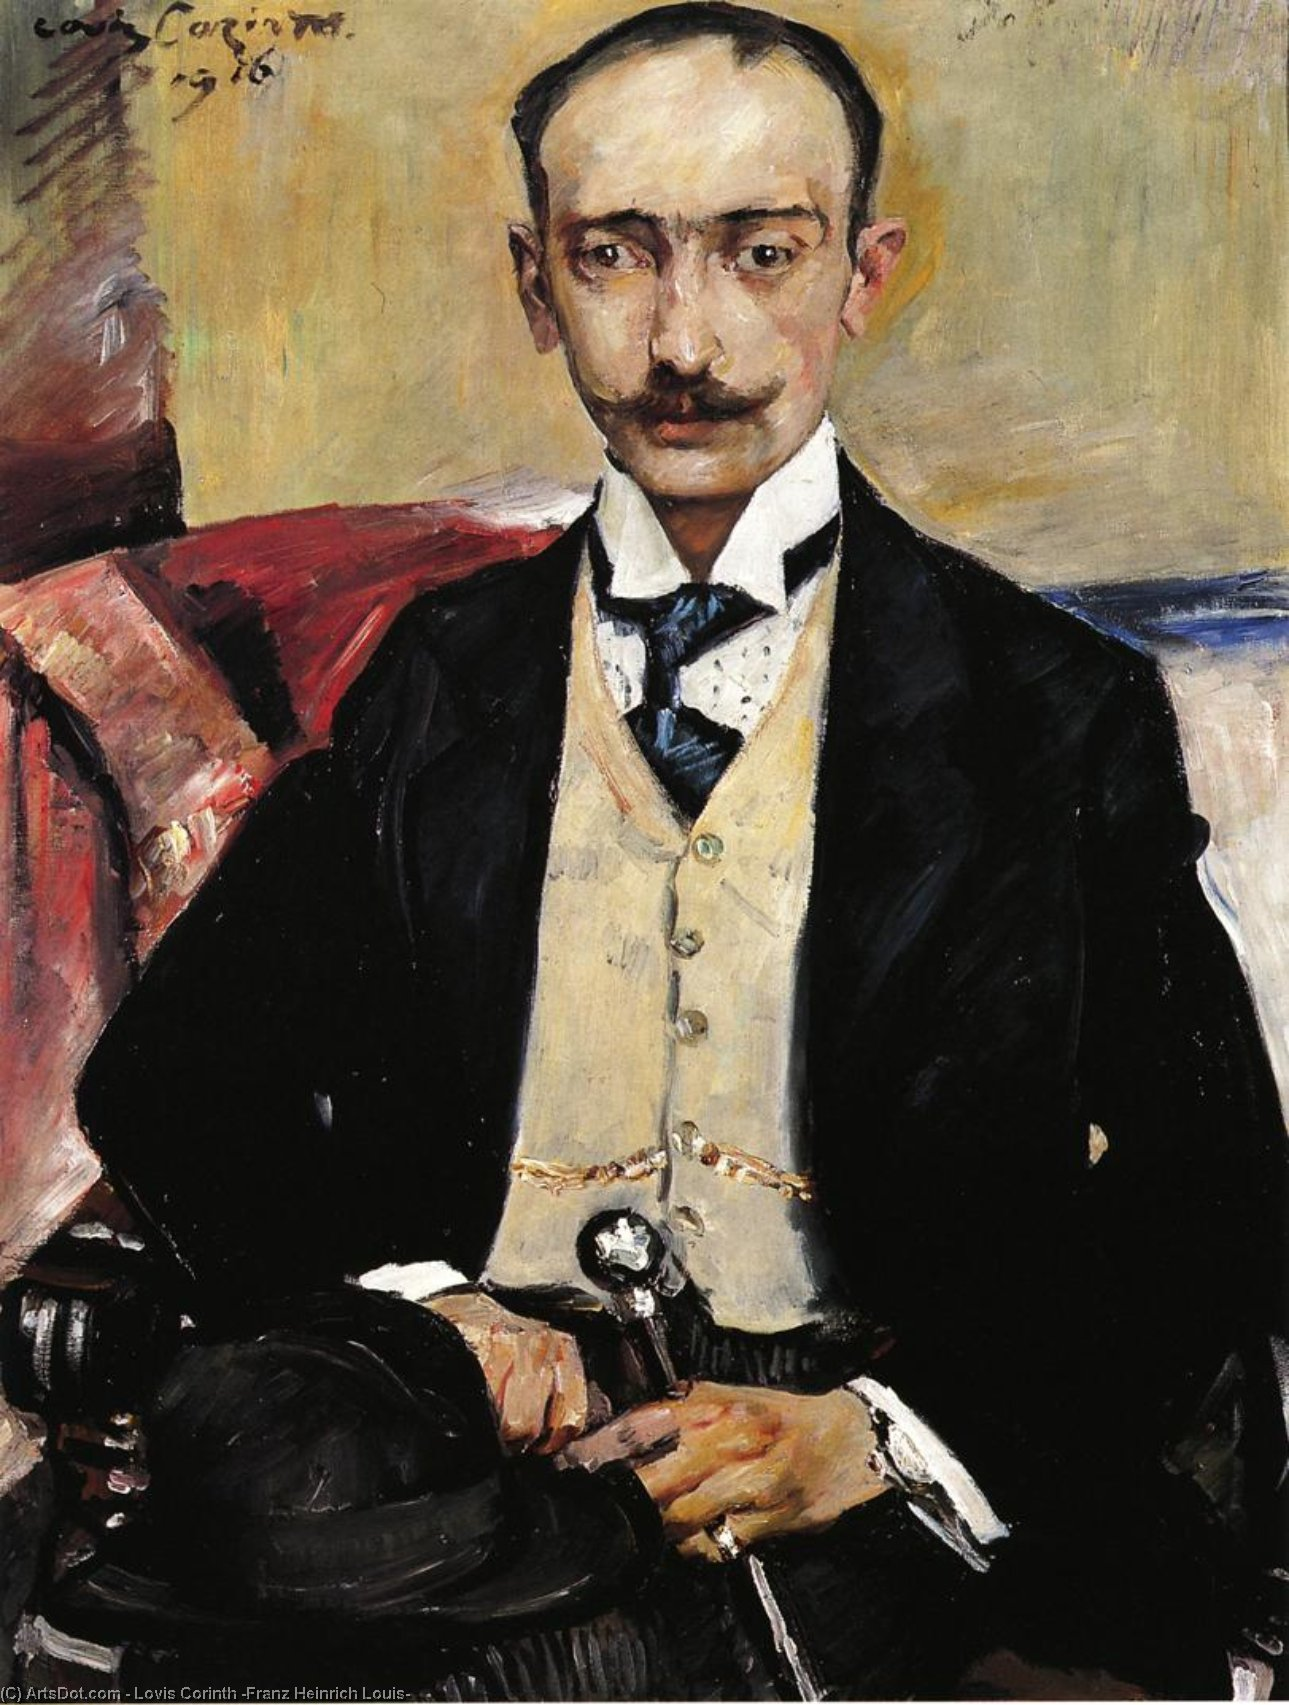 Portrait of Dr. Karl Schwarz, Oil On Canvas by Lovis Corinth (Franz Heinrich Louis) (1858-1925, Netherlands)